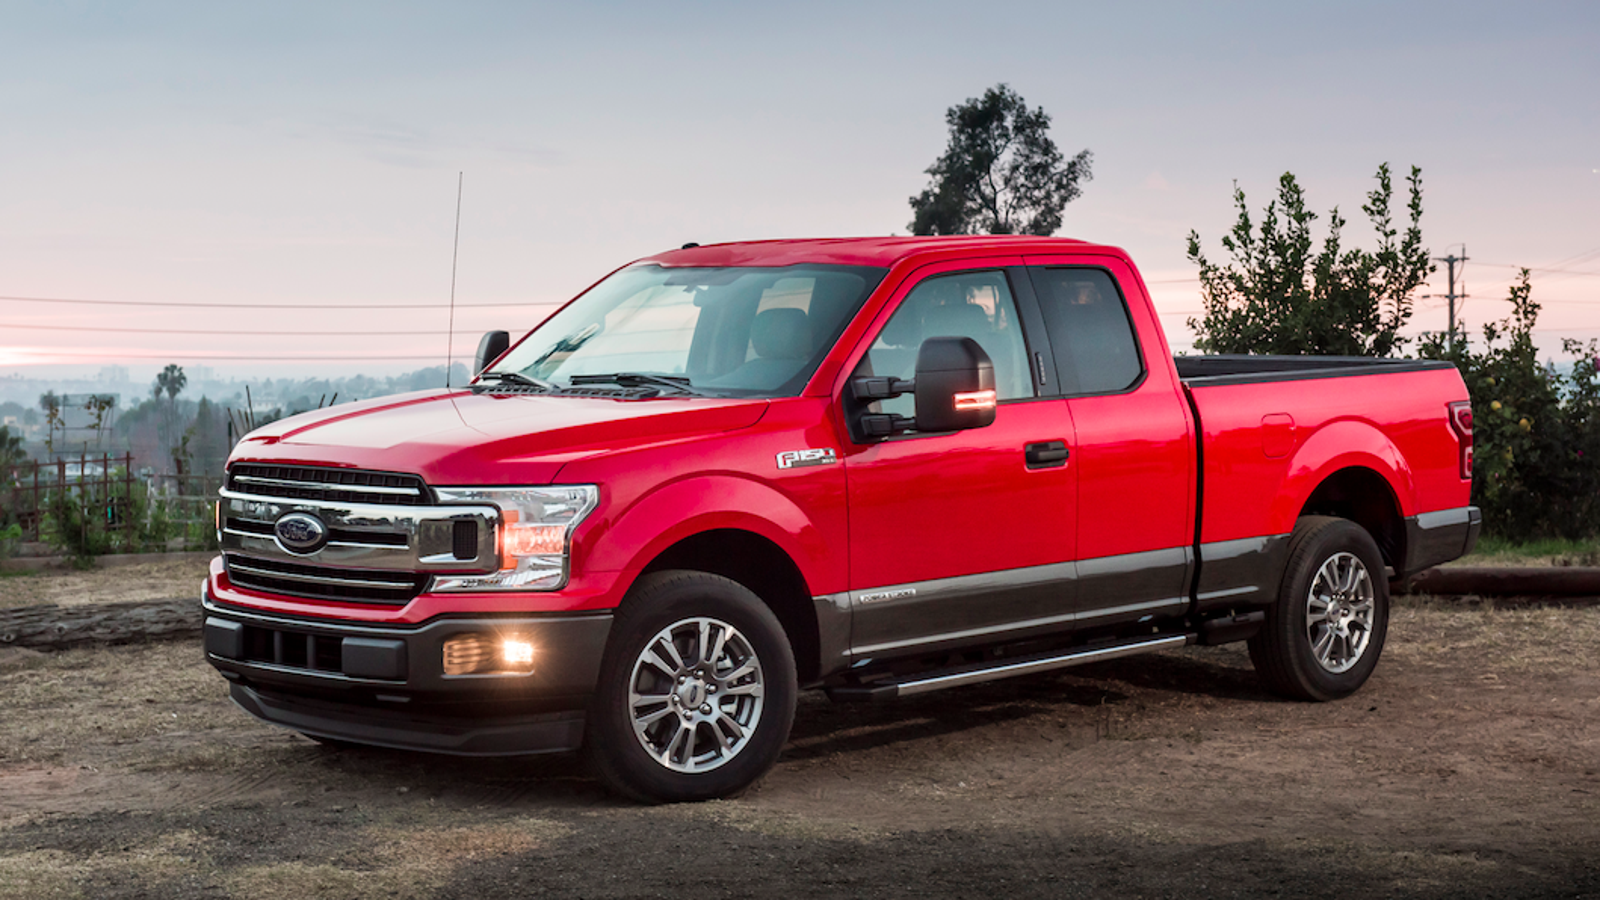 Why the 2018 ford f 150 diesel 2wd gets 30 mpg and the 4wd only gets 25